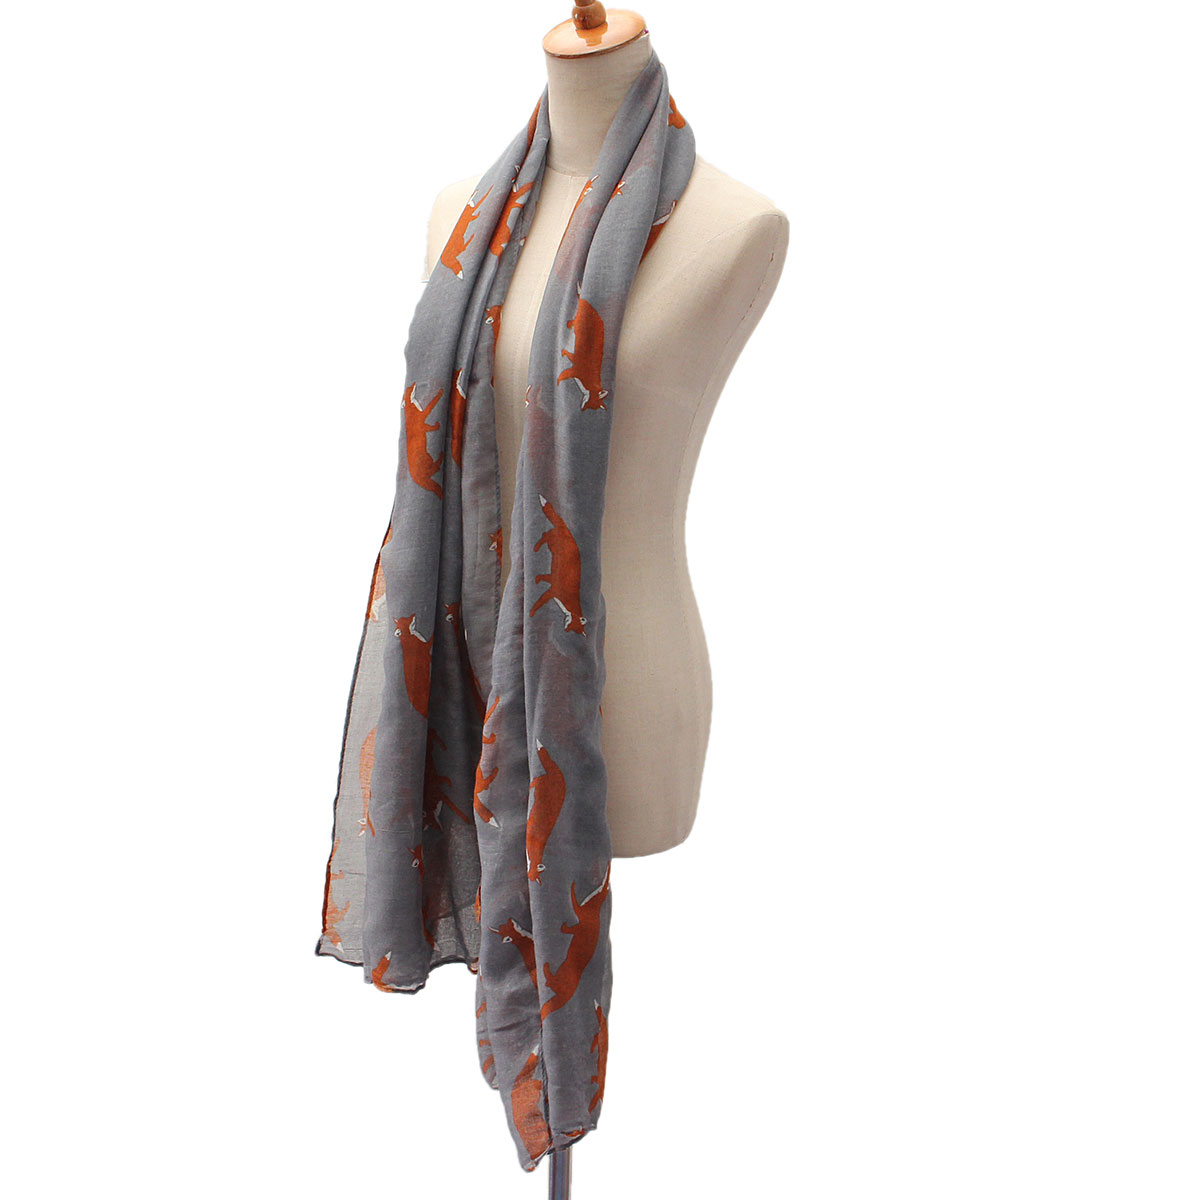 Women Scarf Winter Warm Animal Cute Fox Print Paris Yarn Shawl Wrap Pashmina